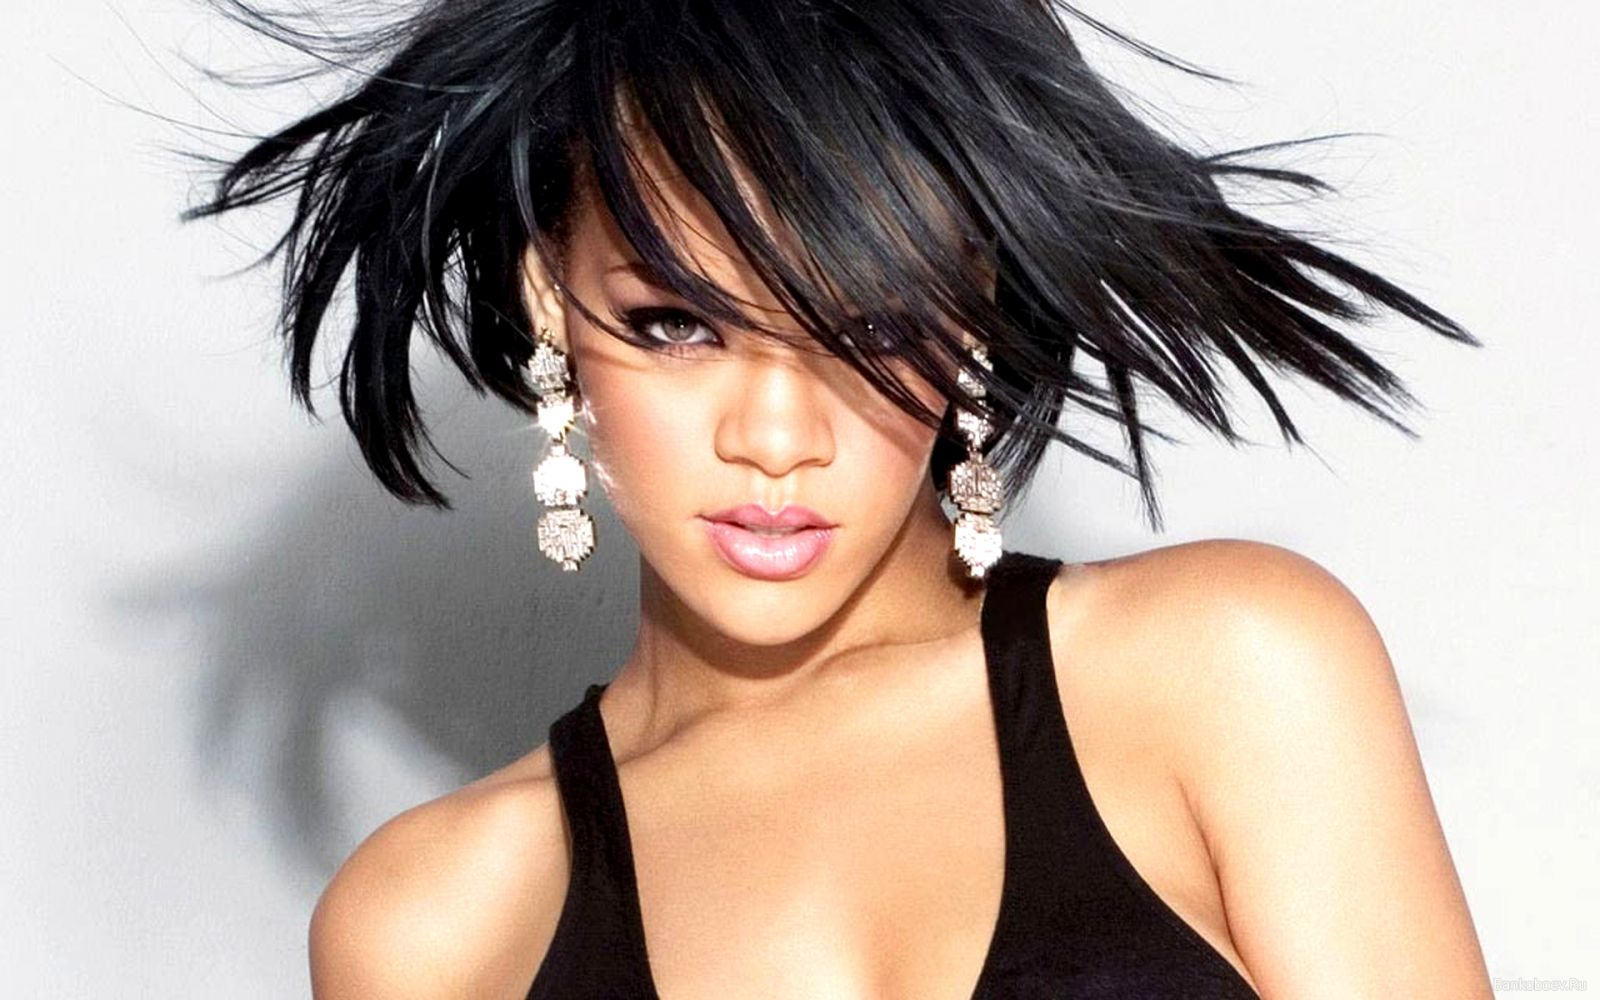 For view Rihanna, Rihanna Pictures, Rihanna Photos, Rihanna 2013 Free ...: stockphototops.blogspot.com/2013/05/rihanna-free-stock-photos.html